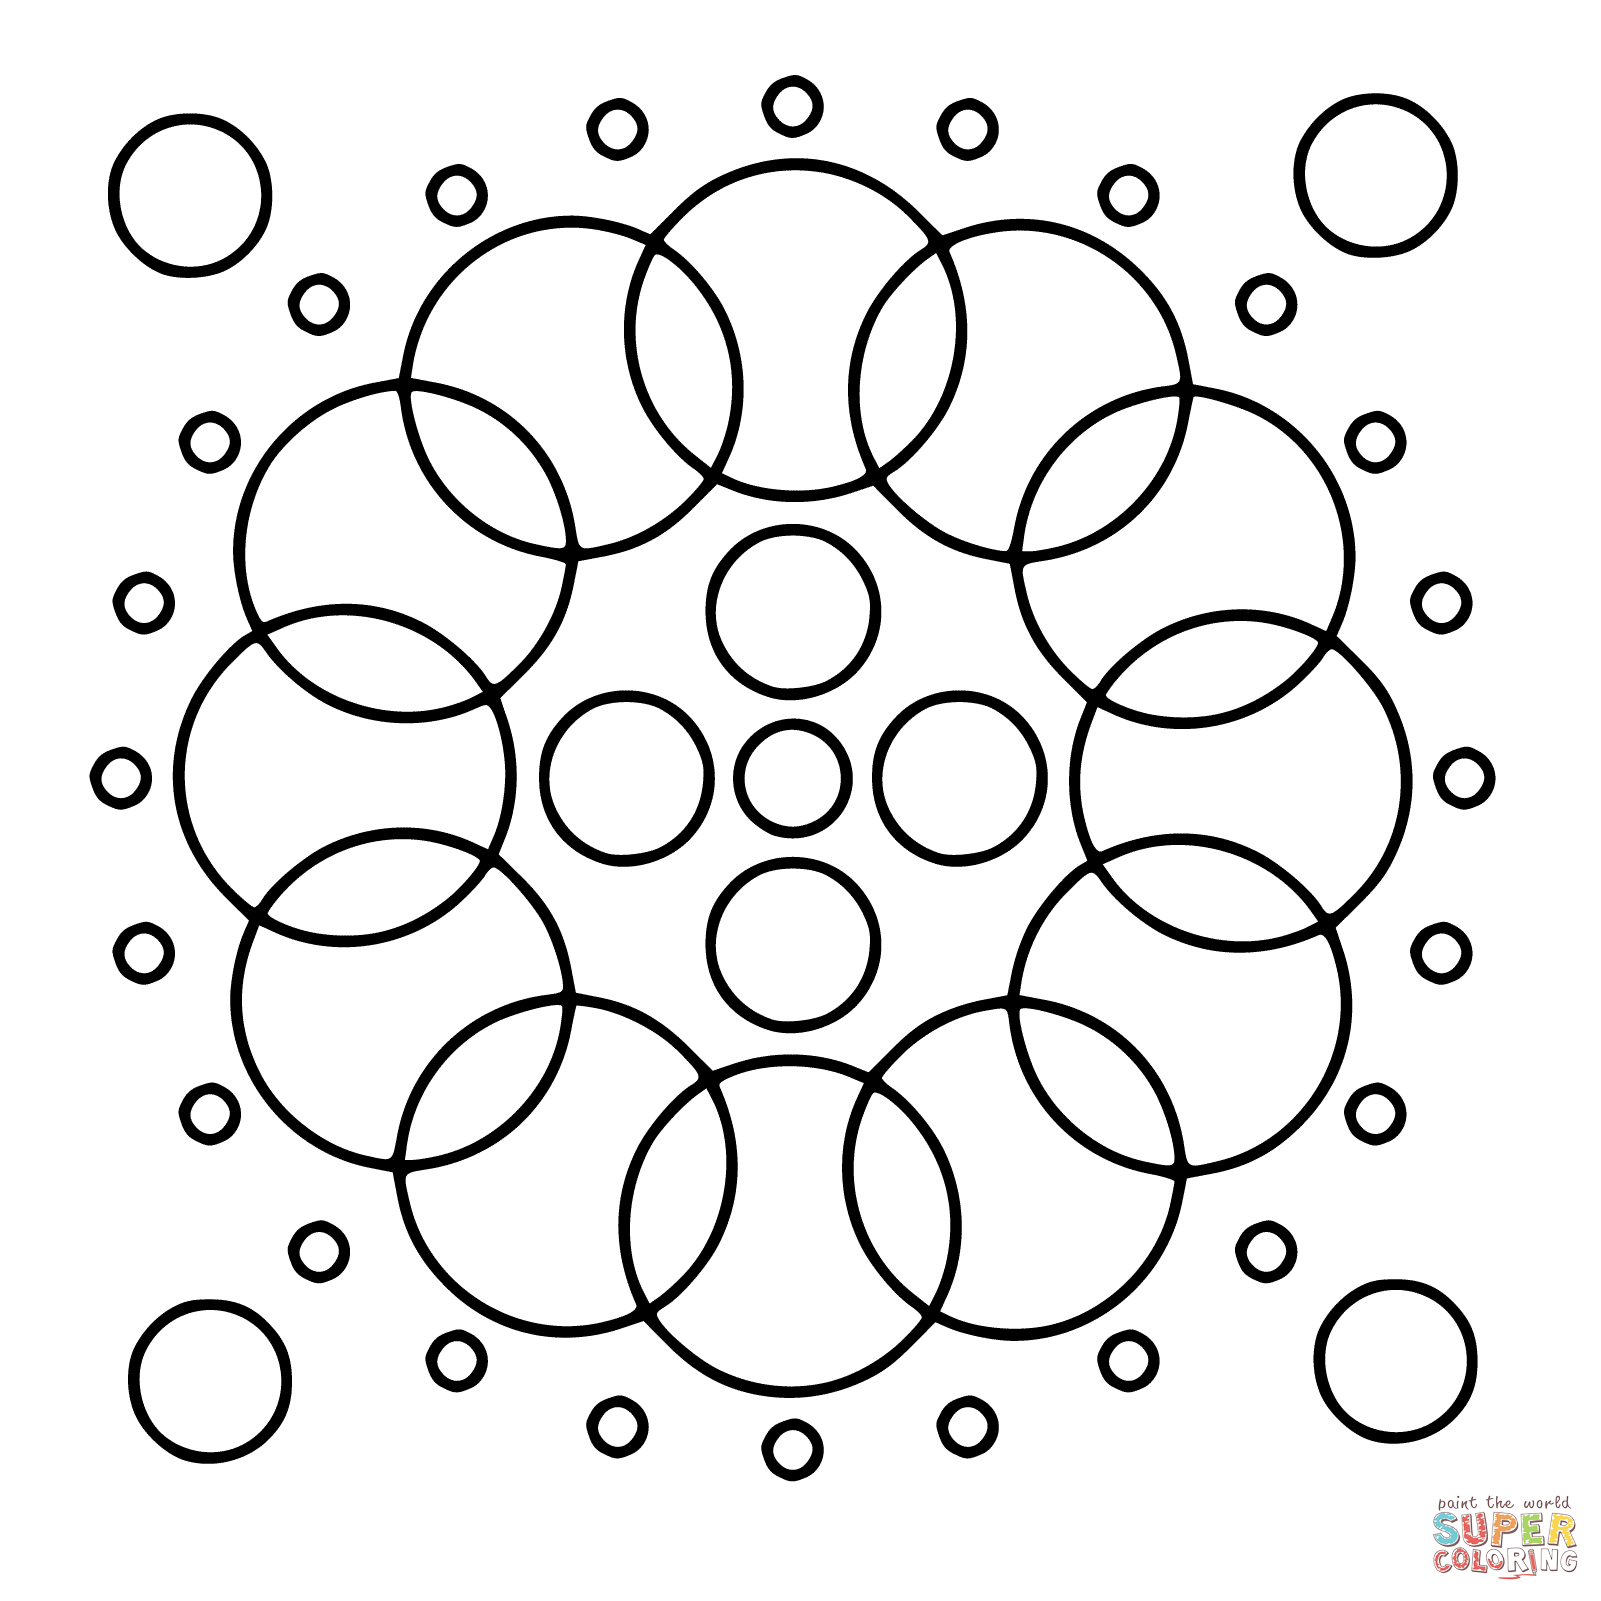 Circle Mandalas Coloring Pages | Free Coloring Pages - Free Printable Mandala Coloring Pages